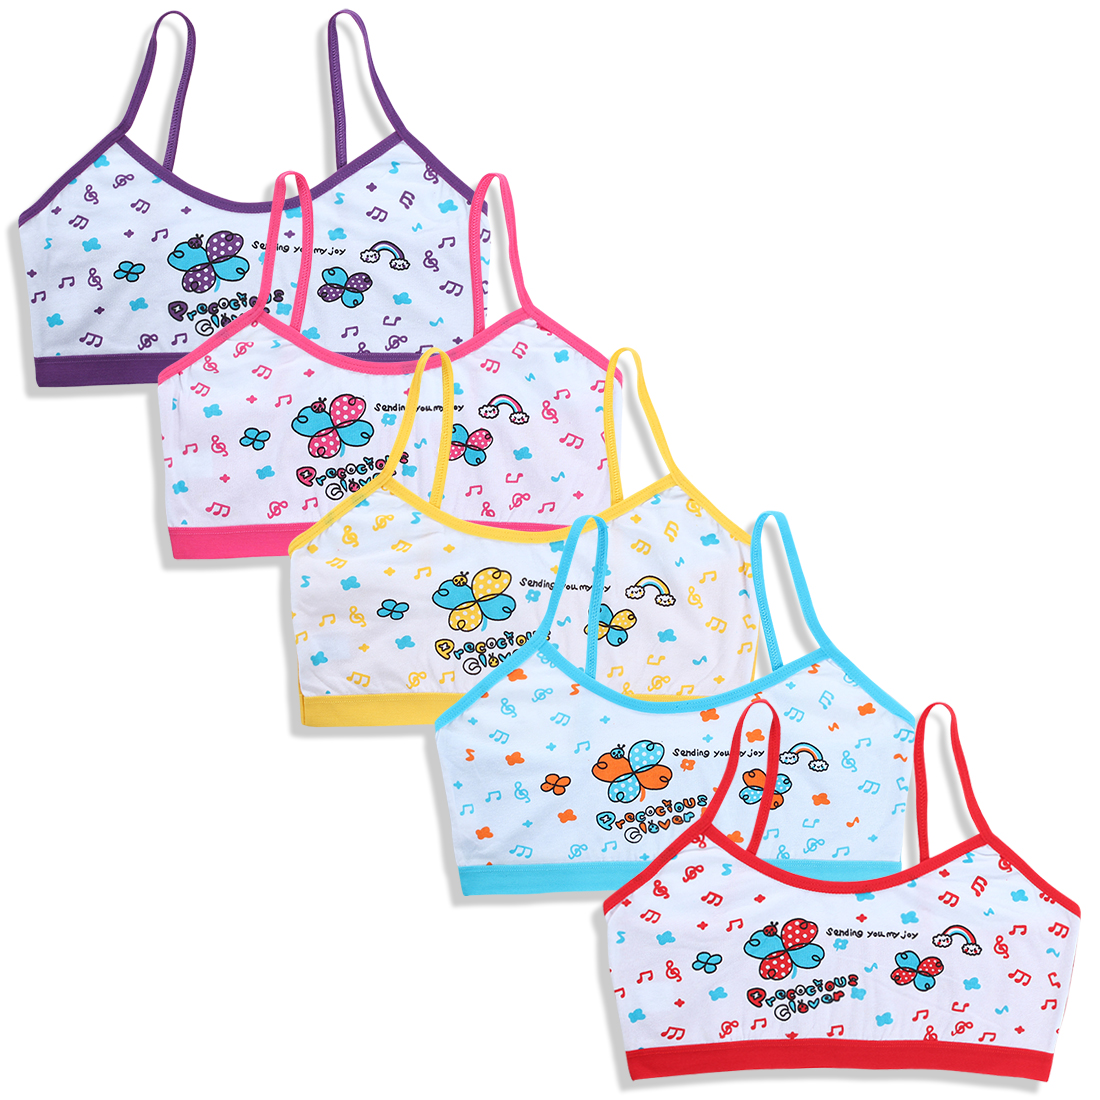 5pc/Lot Underwear Cotton Colorful Baby Girl Kids Children Cartoon 6-14Y Hipster Sport Teens Teenage Young Camisole Vest